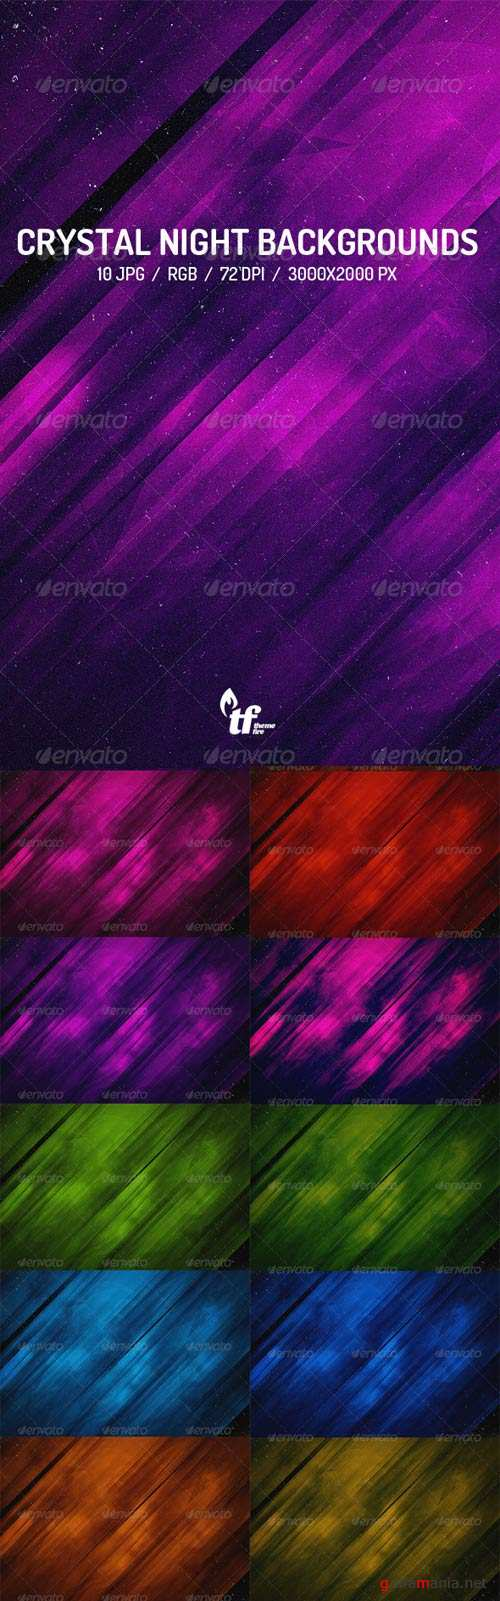 Crystal Night Backgrounds